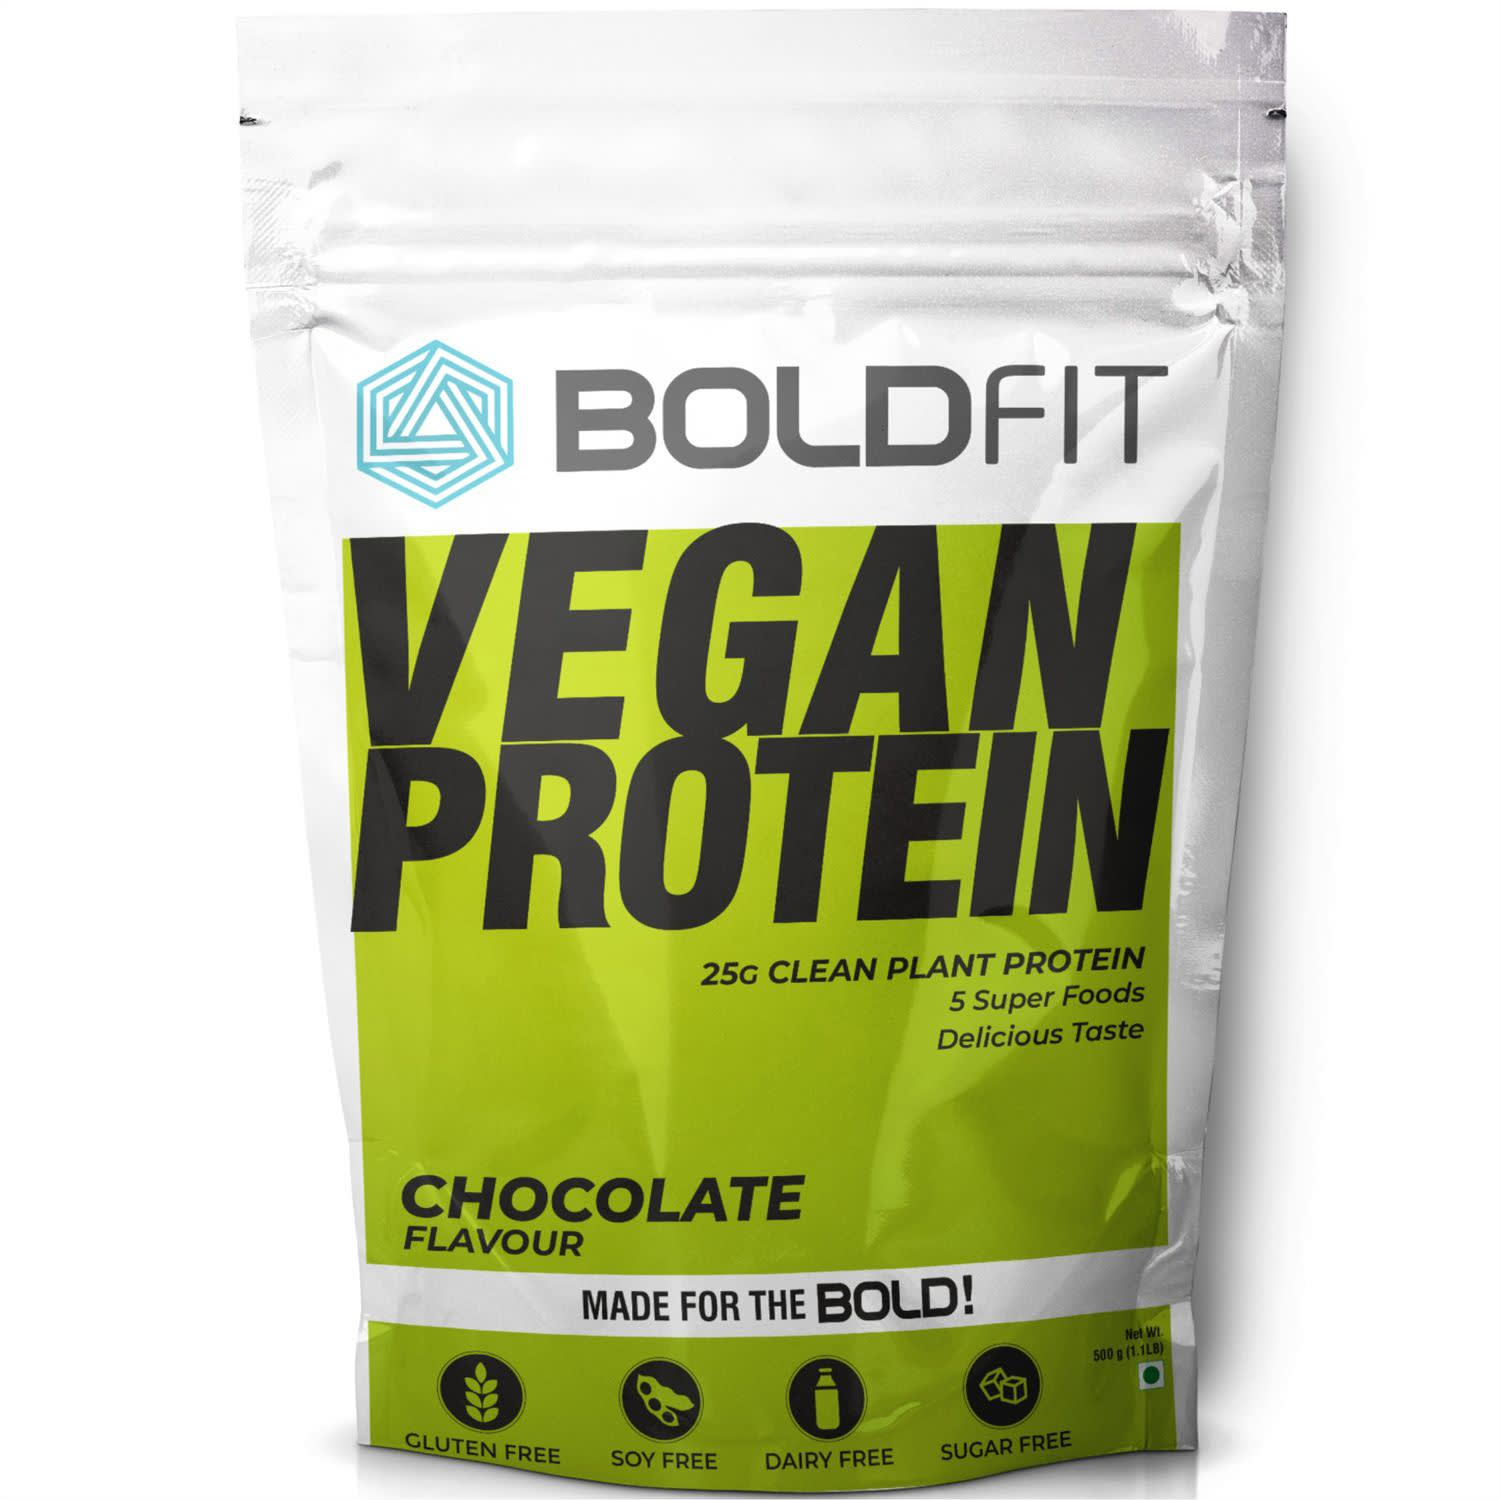 Boldfit Plant Protein Powder For Men & Women, Plant Based Vegan Protein Supplement With Superfoods (Chocolate Flavor) - 500GM.